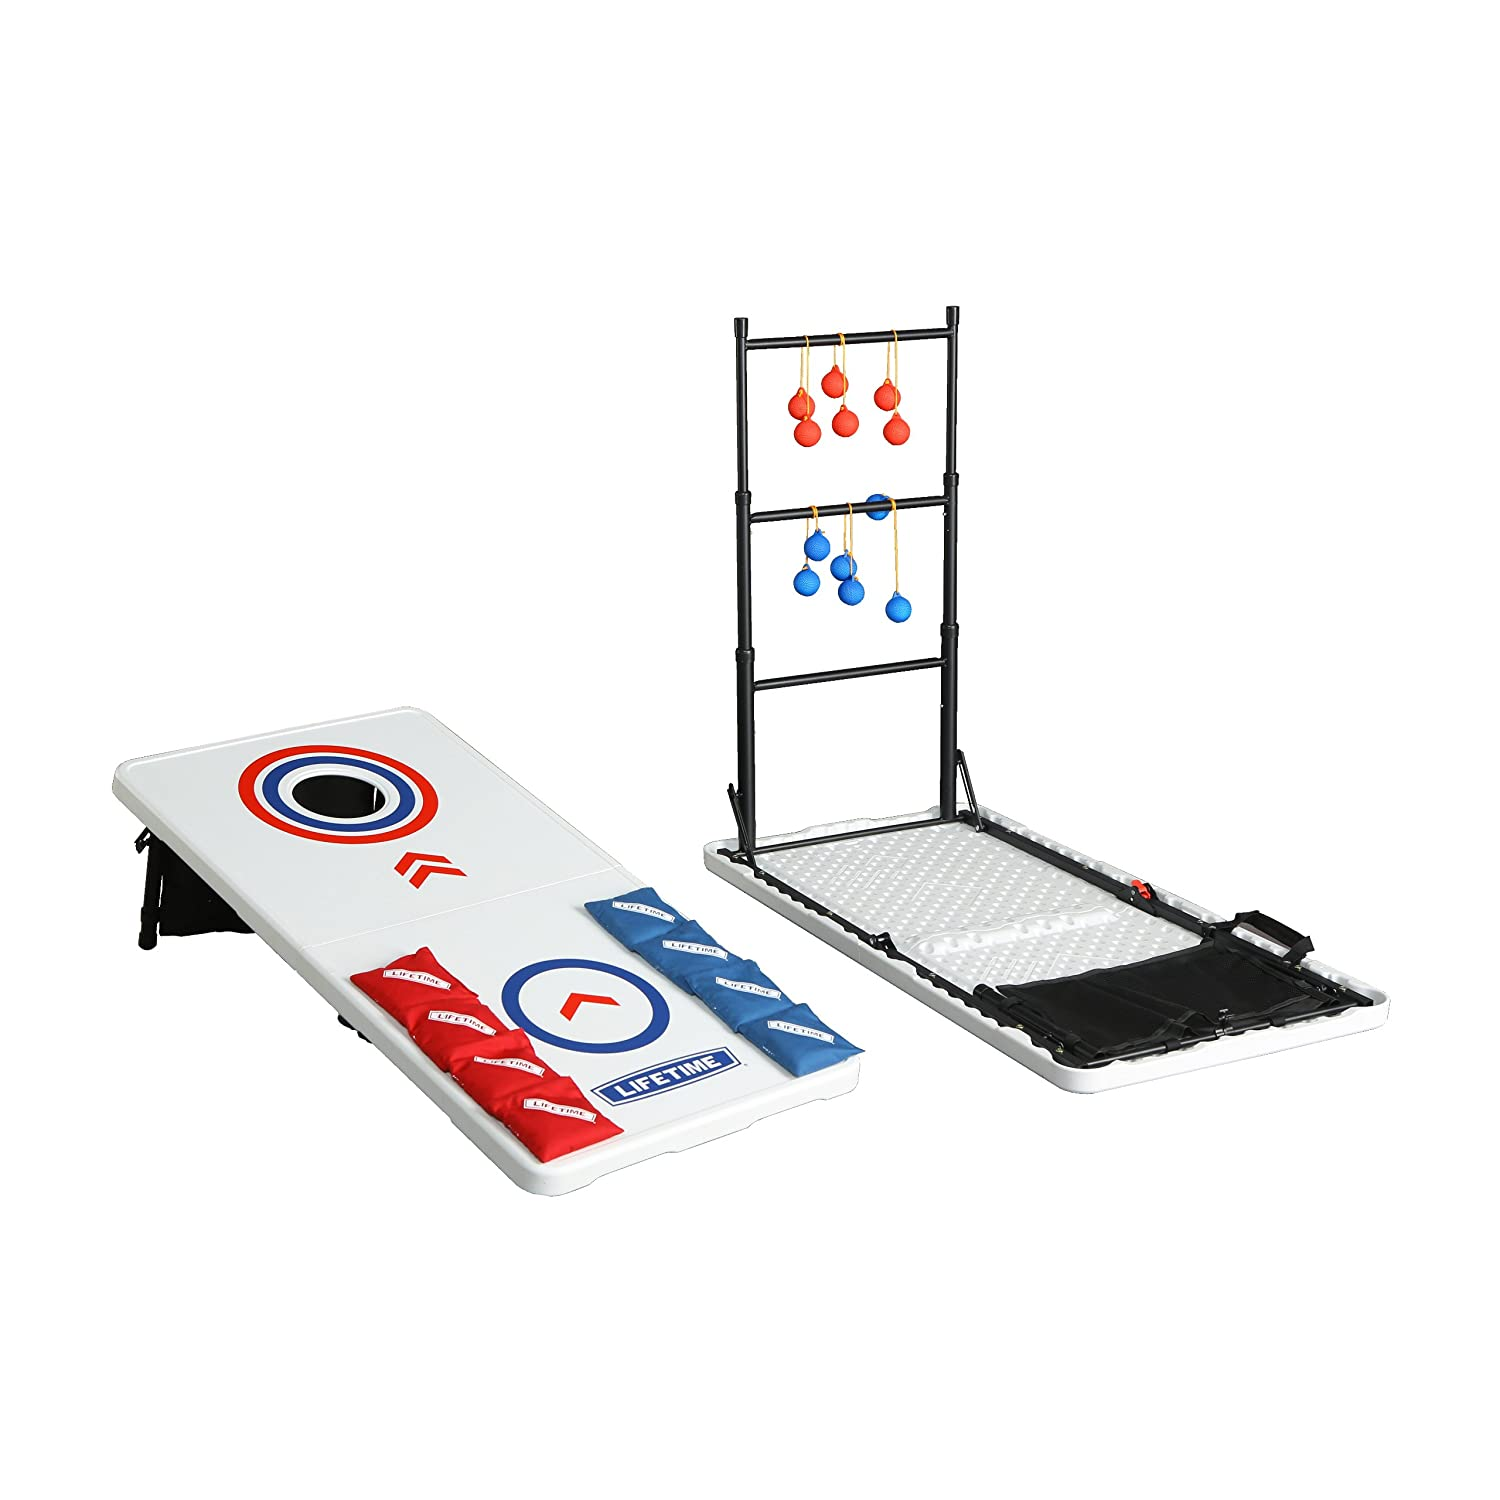 90466 Ladderball Game and Table Combo Set Lifetime Lifetime Heavy Duty Cornhole Dropship